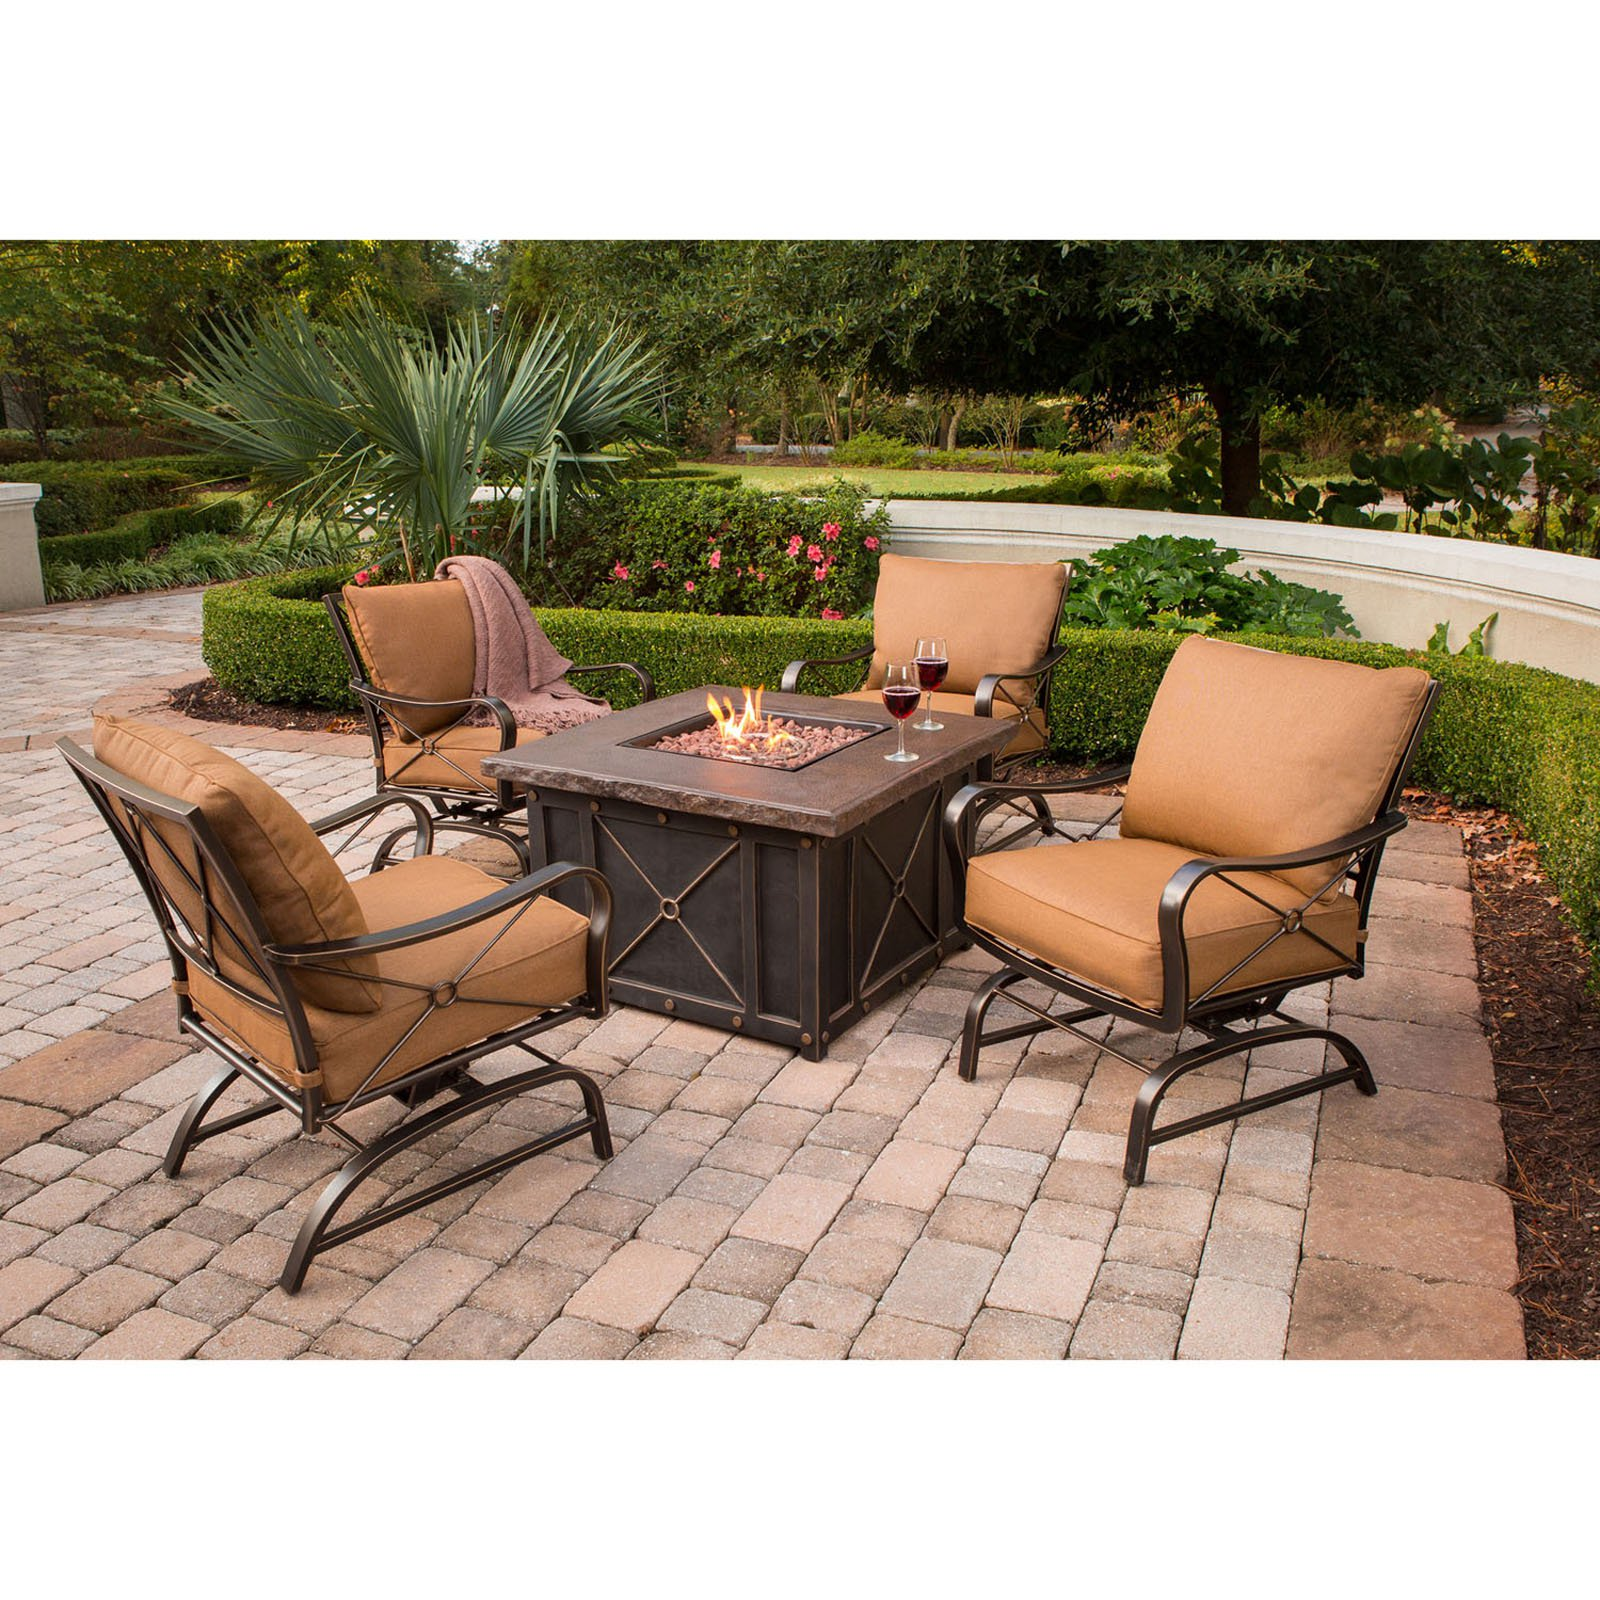 Hanover Outdoor Summer Nights Aluminum 5-Piece Lounge Set with DuraStone Firepit Table, Desert Sunset by Hanover Outdoor